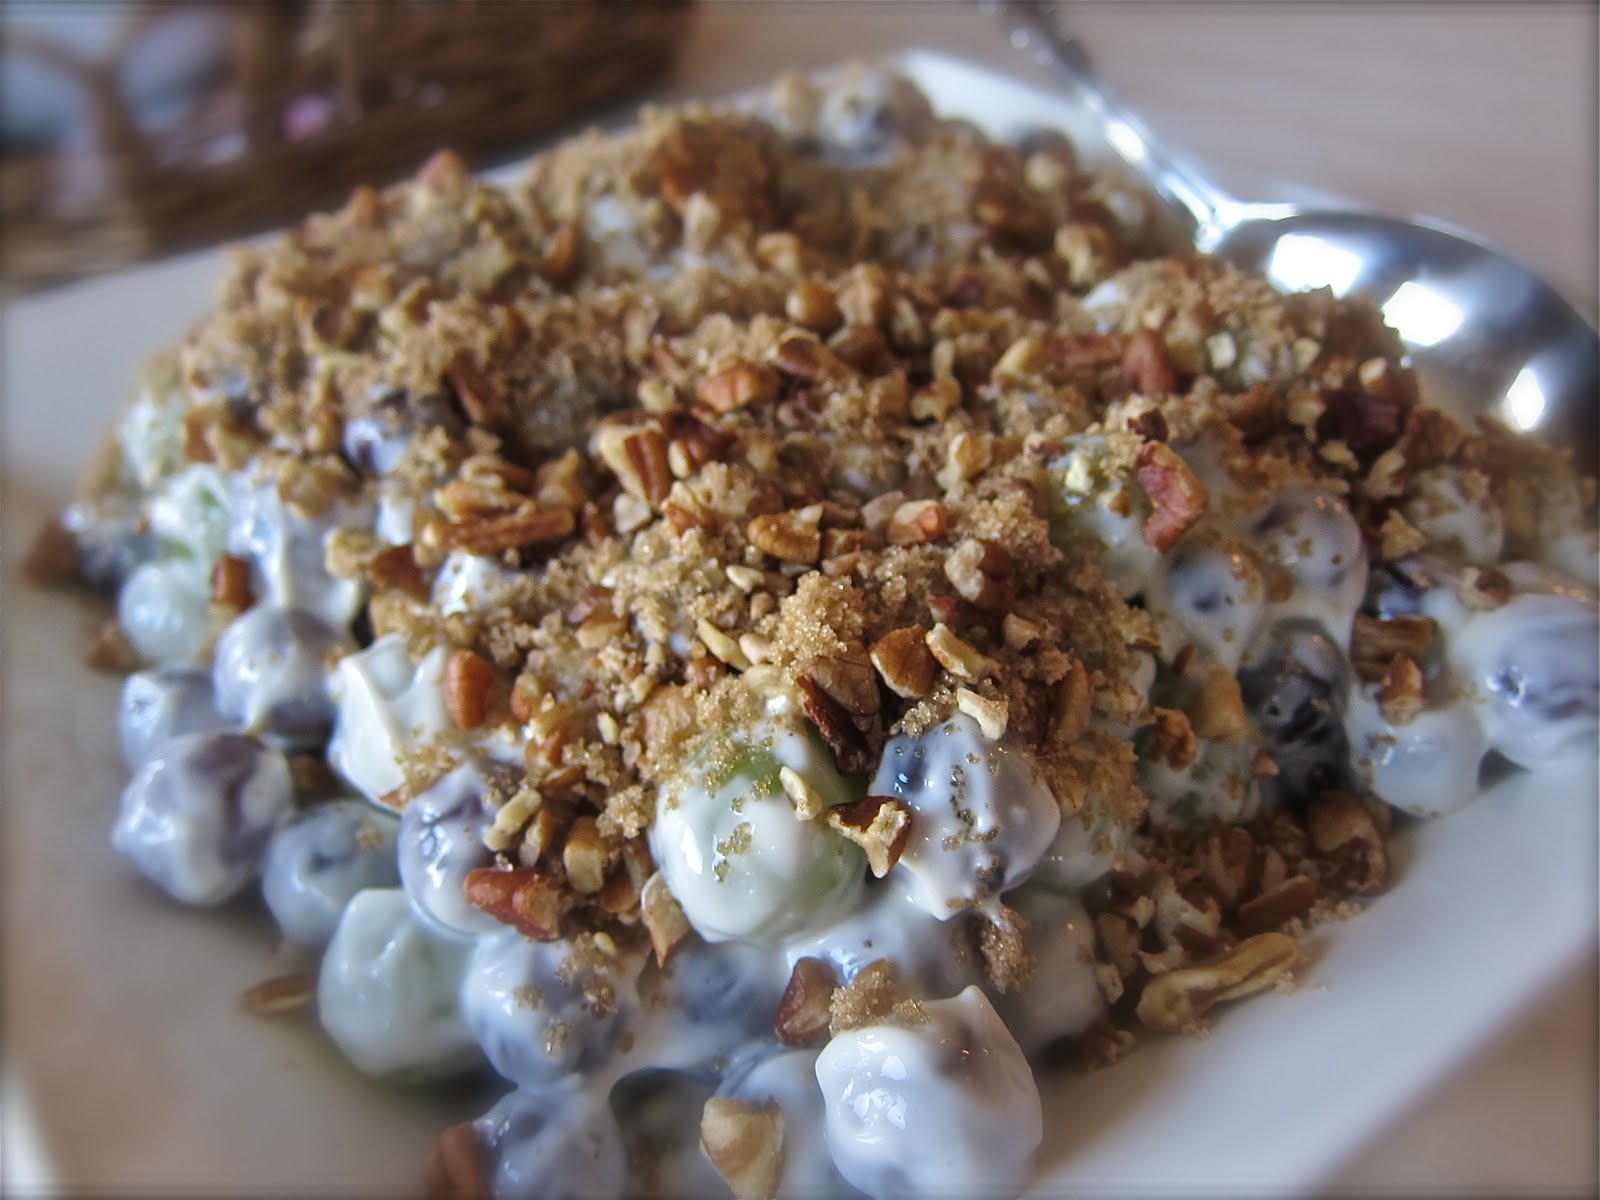 stir cream cheese mixture with the grapes and place in a serving dish